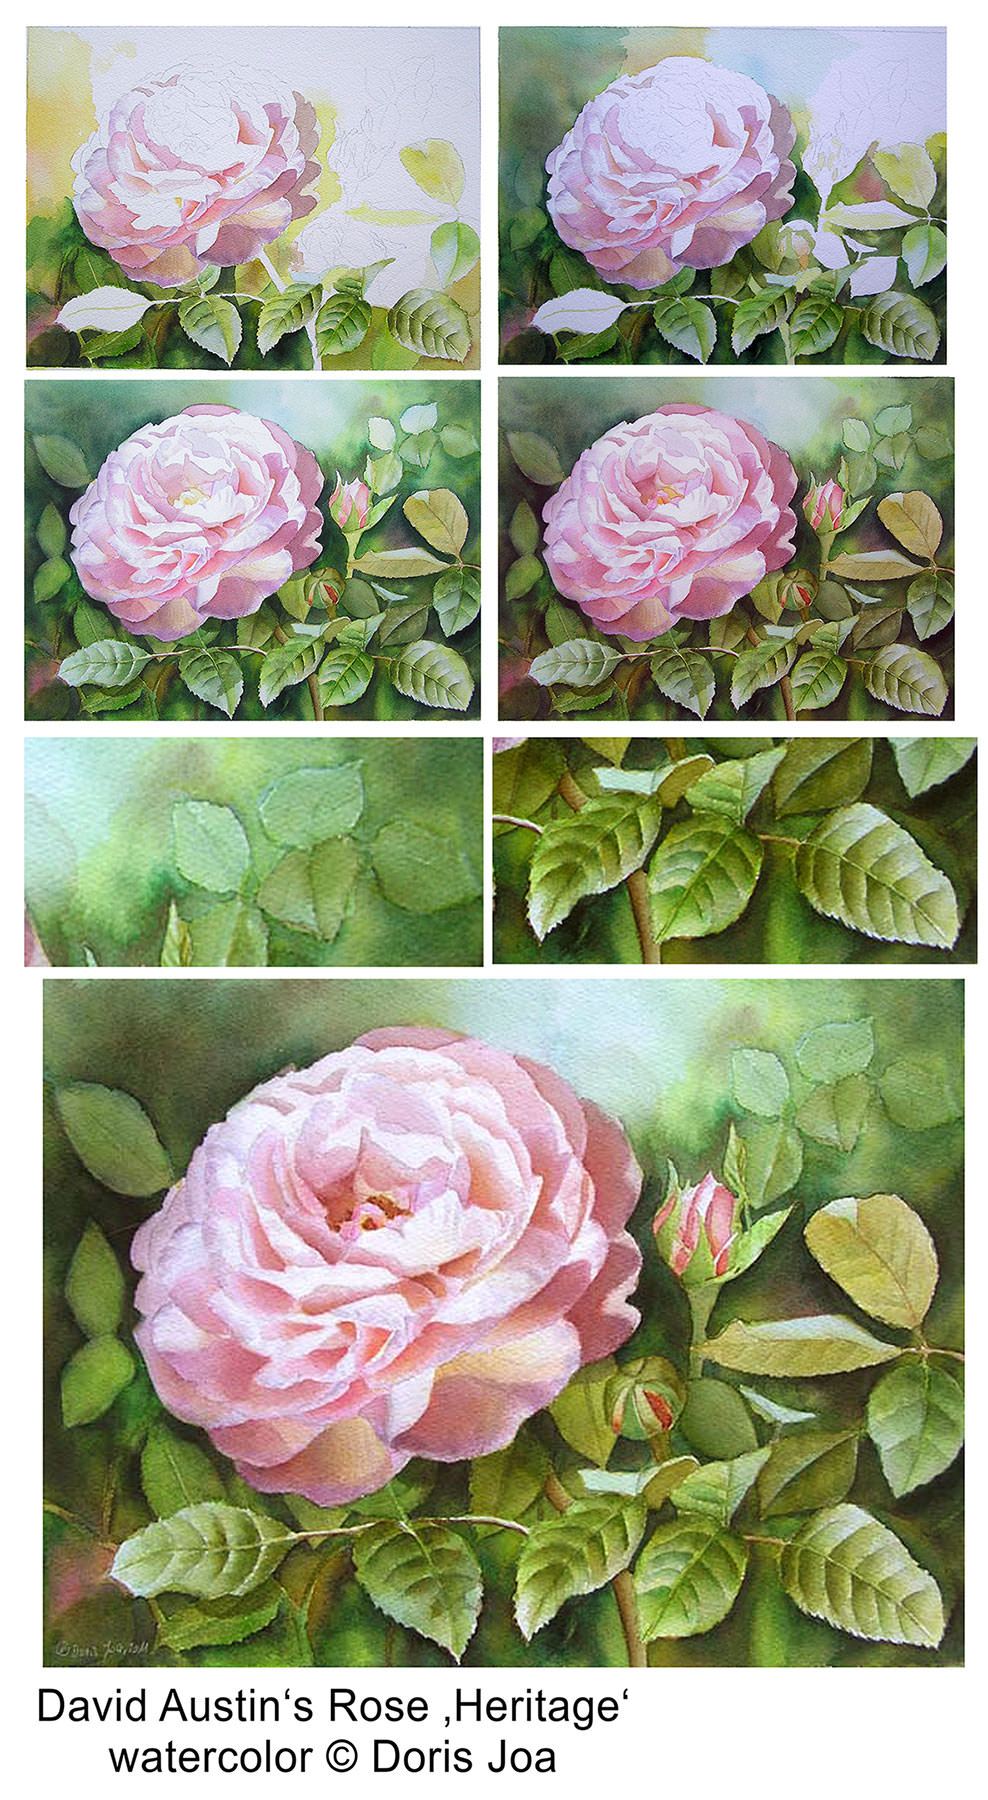 How to paint roses watercolor rose painting step by step for How to paint a rose step by step